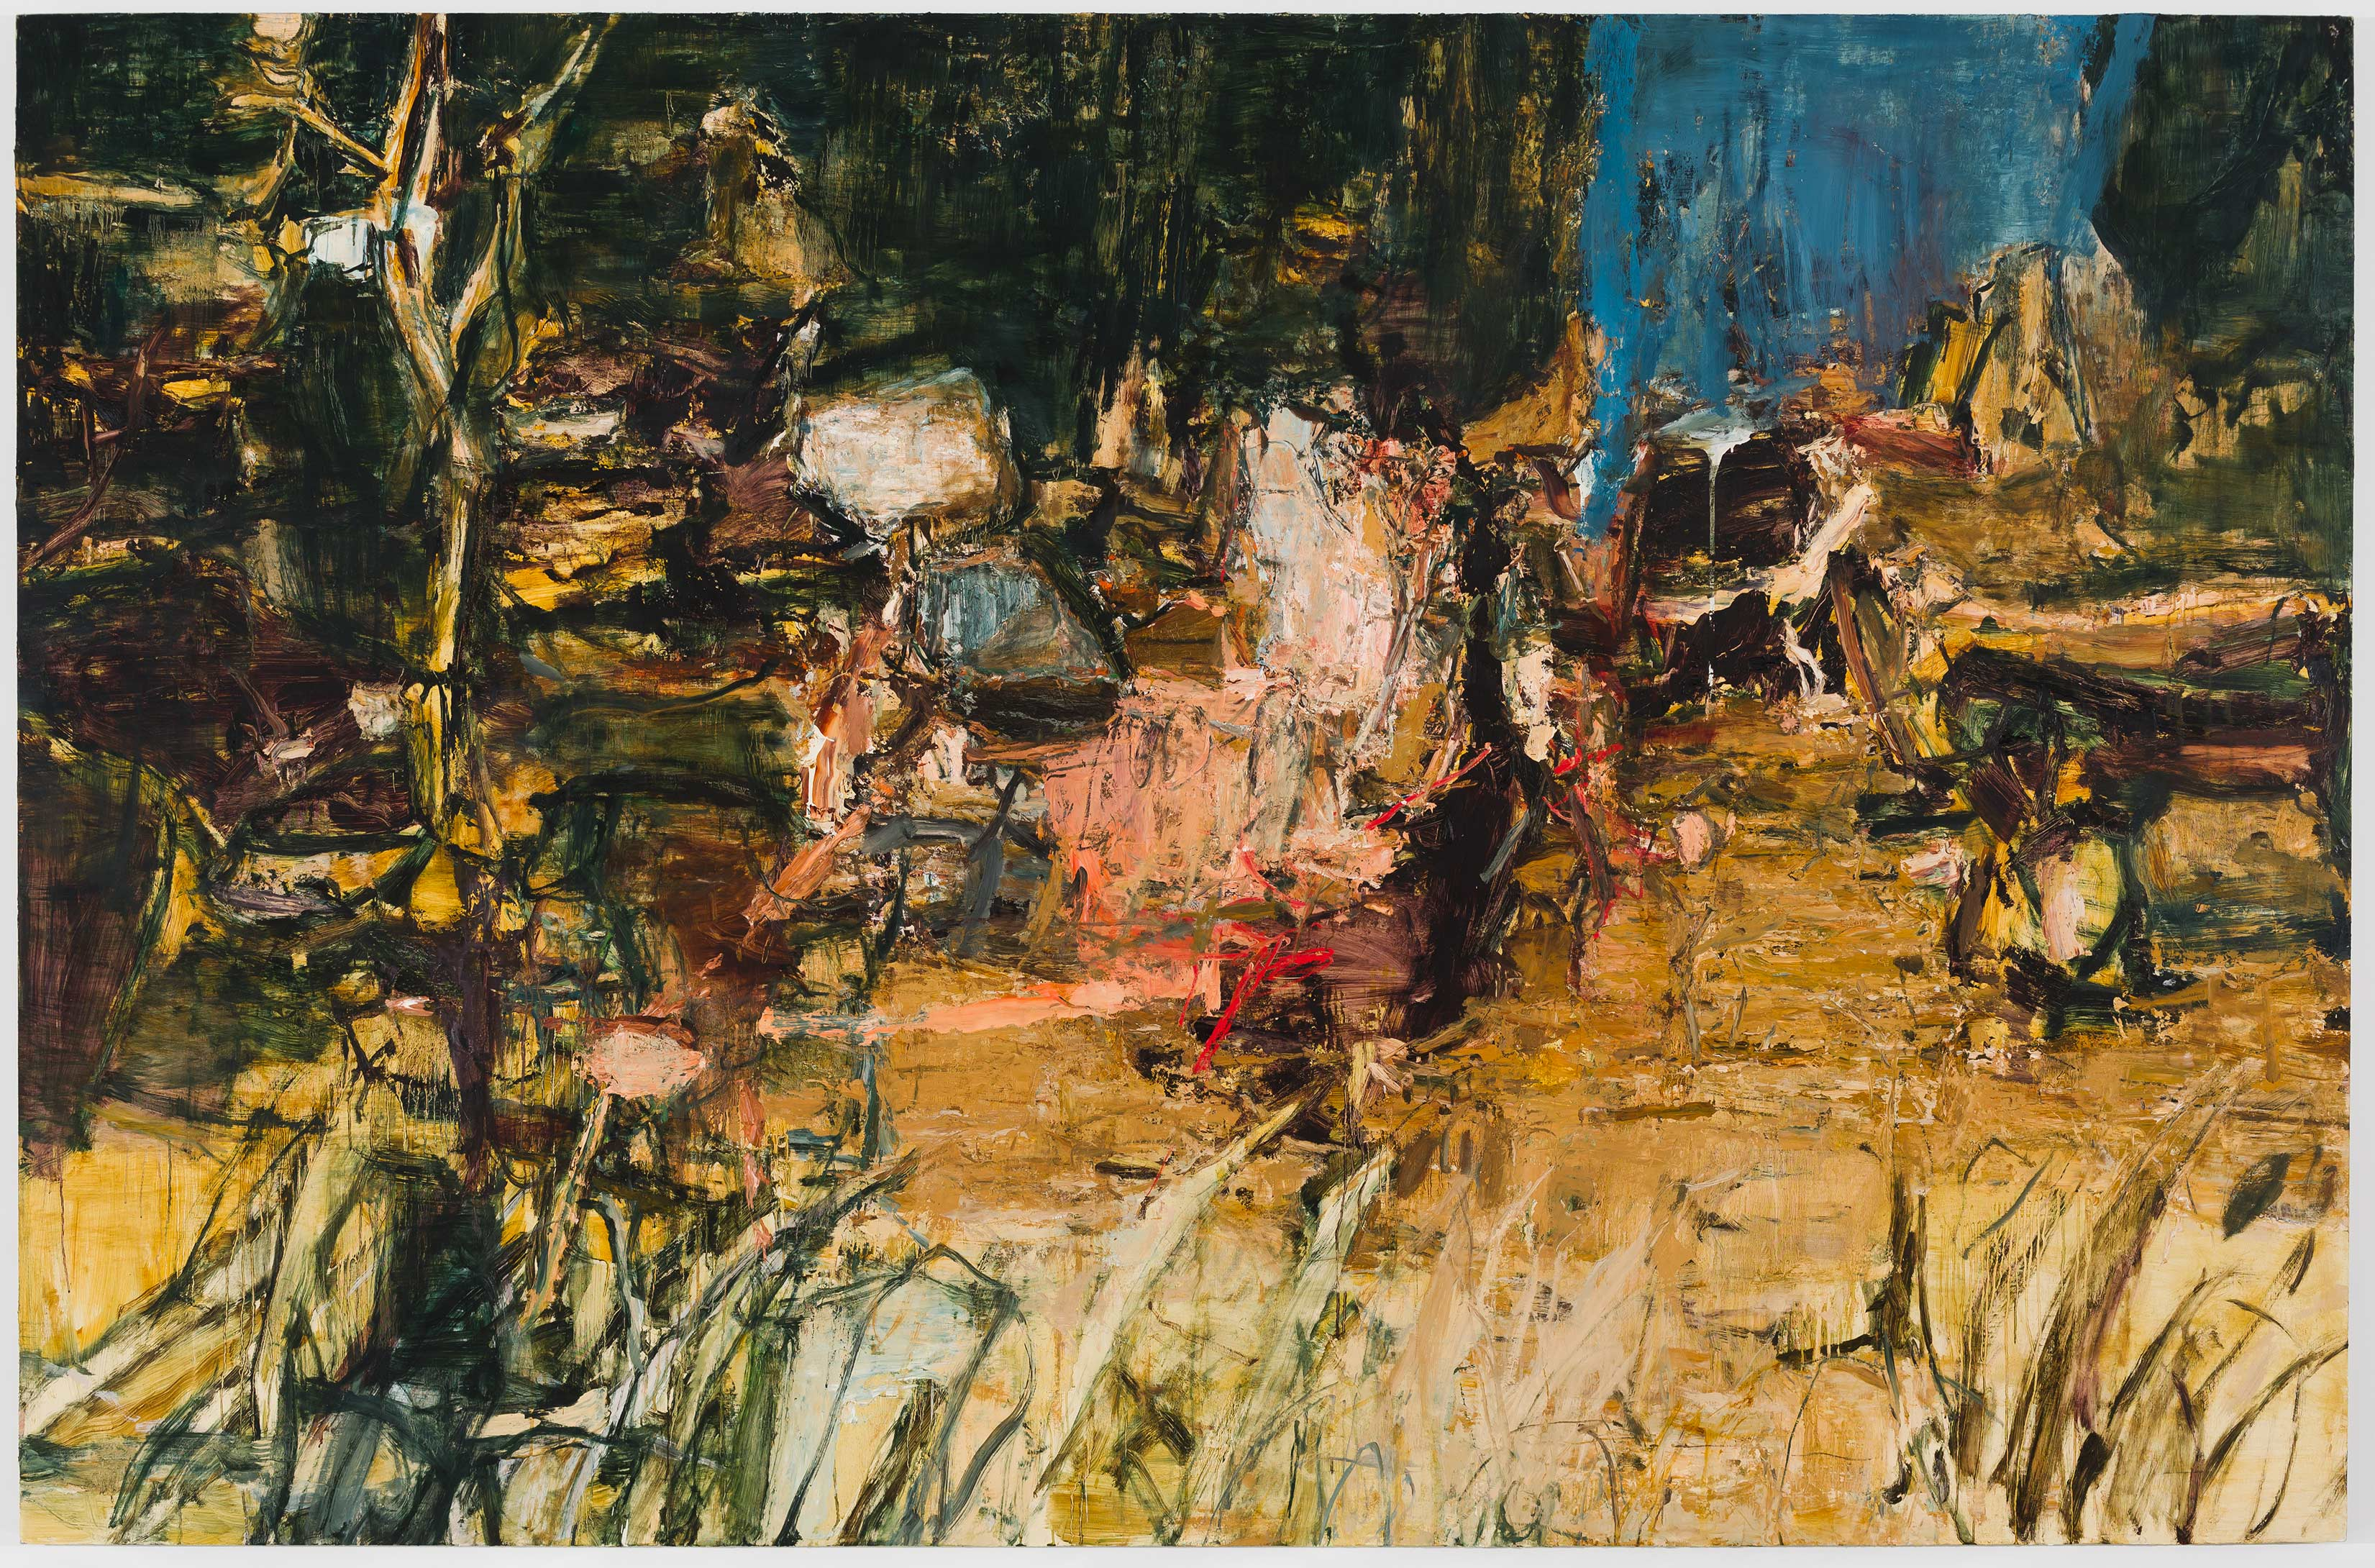 Tu Hongtao, Drunken Forest 2020 Oil on canvas 82 11/16 x 126 inches (210 x 320 cm) © Tu Hongtao